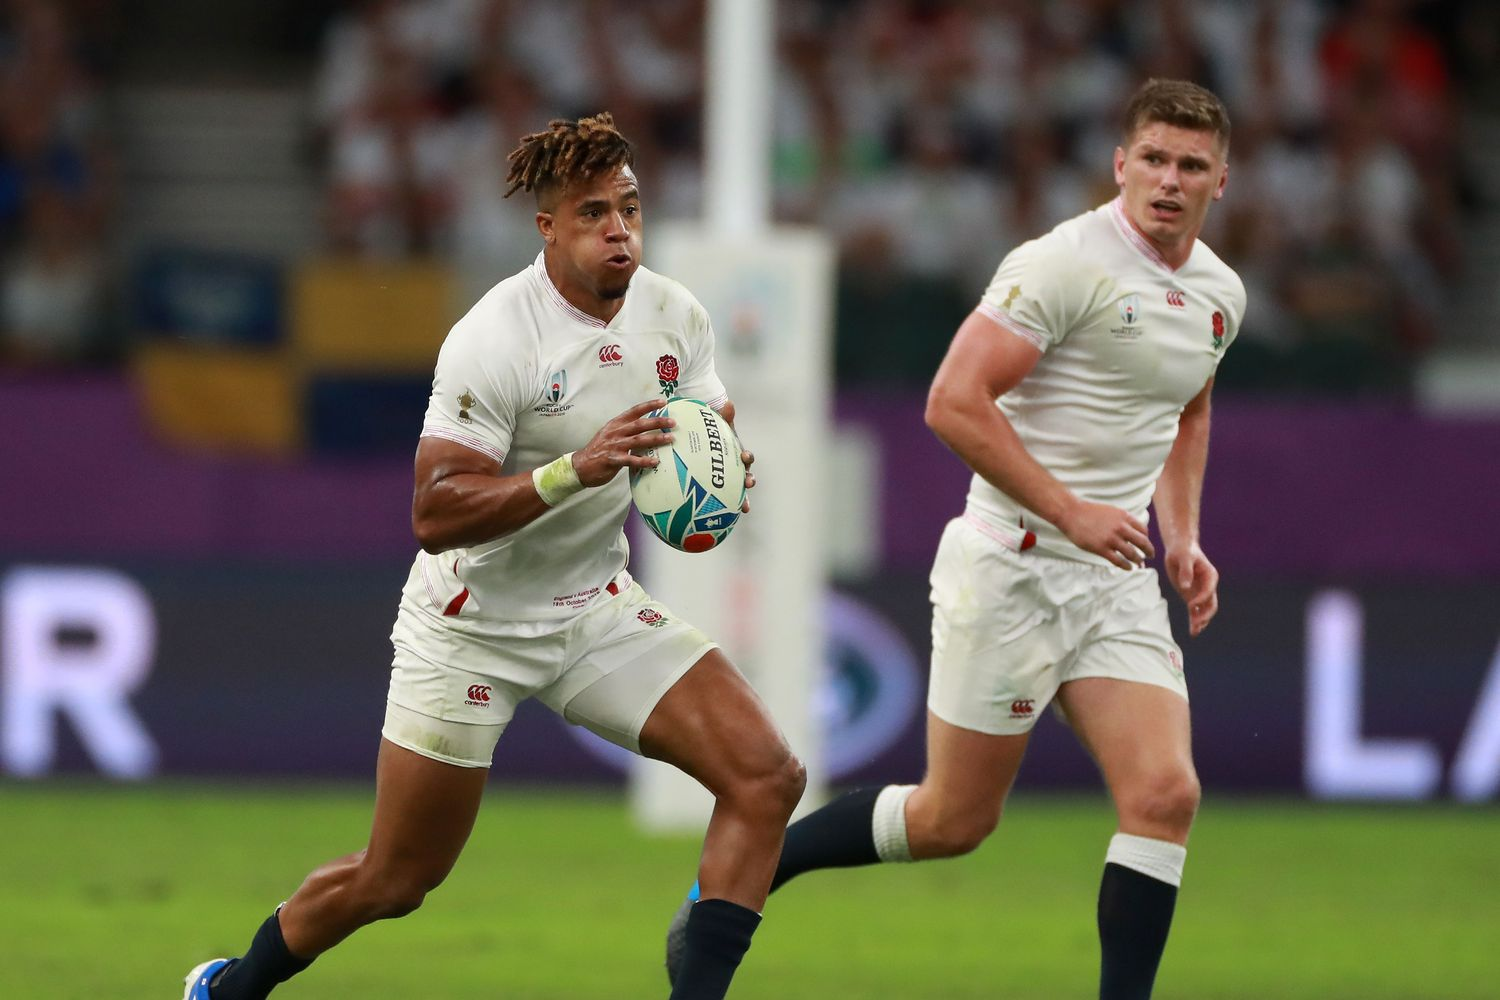 England v Australia - Rugby World Cup 2019: Quarter Final